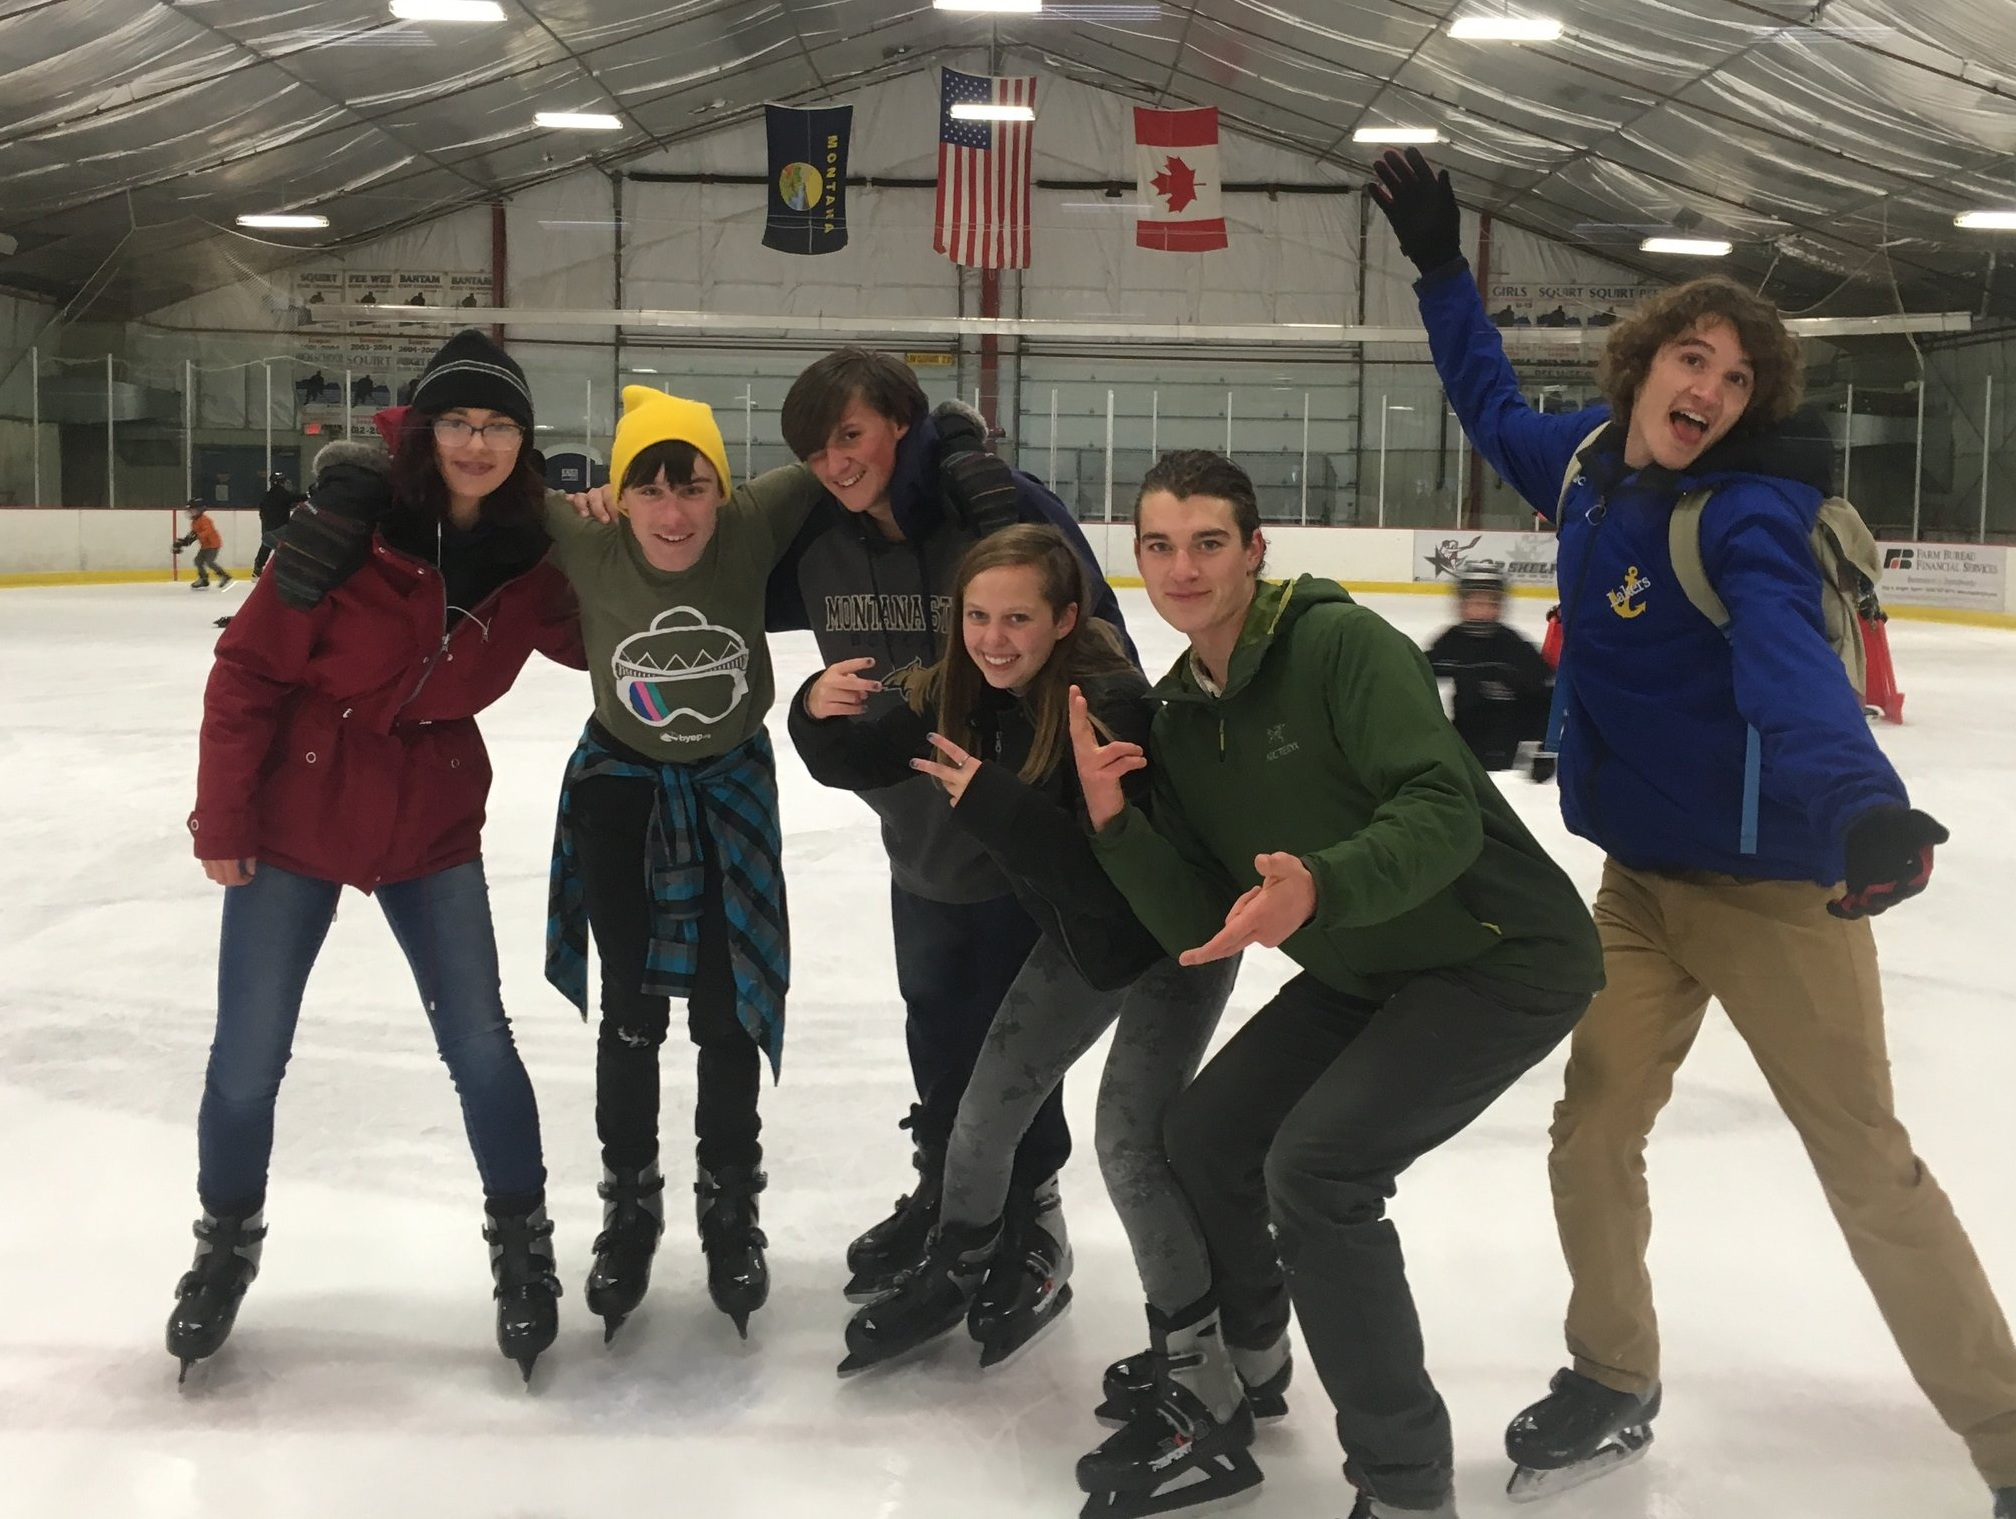 9th grade participants Emory, Garrett, Dylan and Laney trying out their skating skills with support from super mentors Nathaniel and Ben.